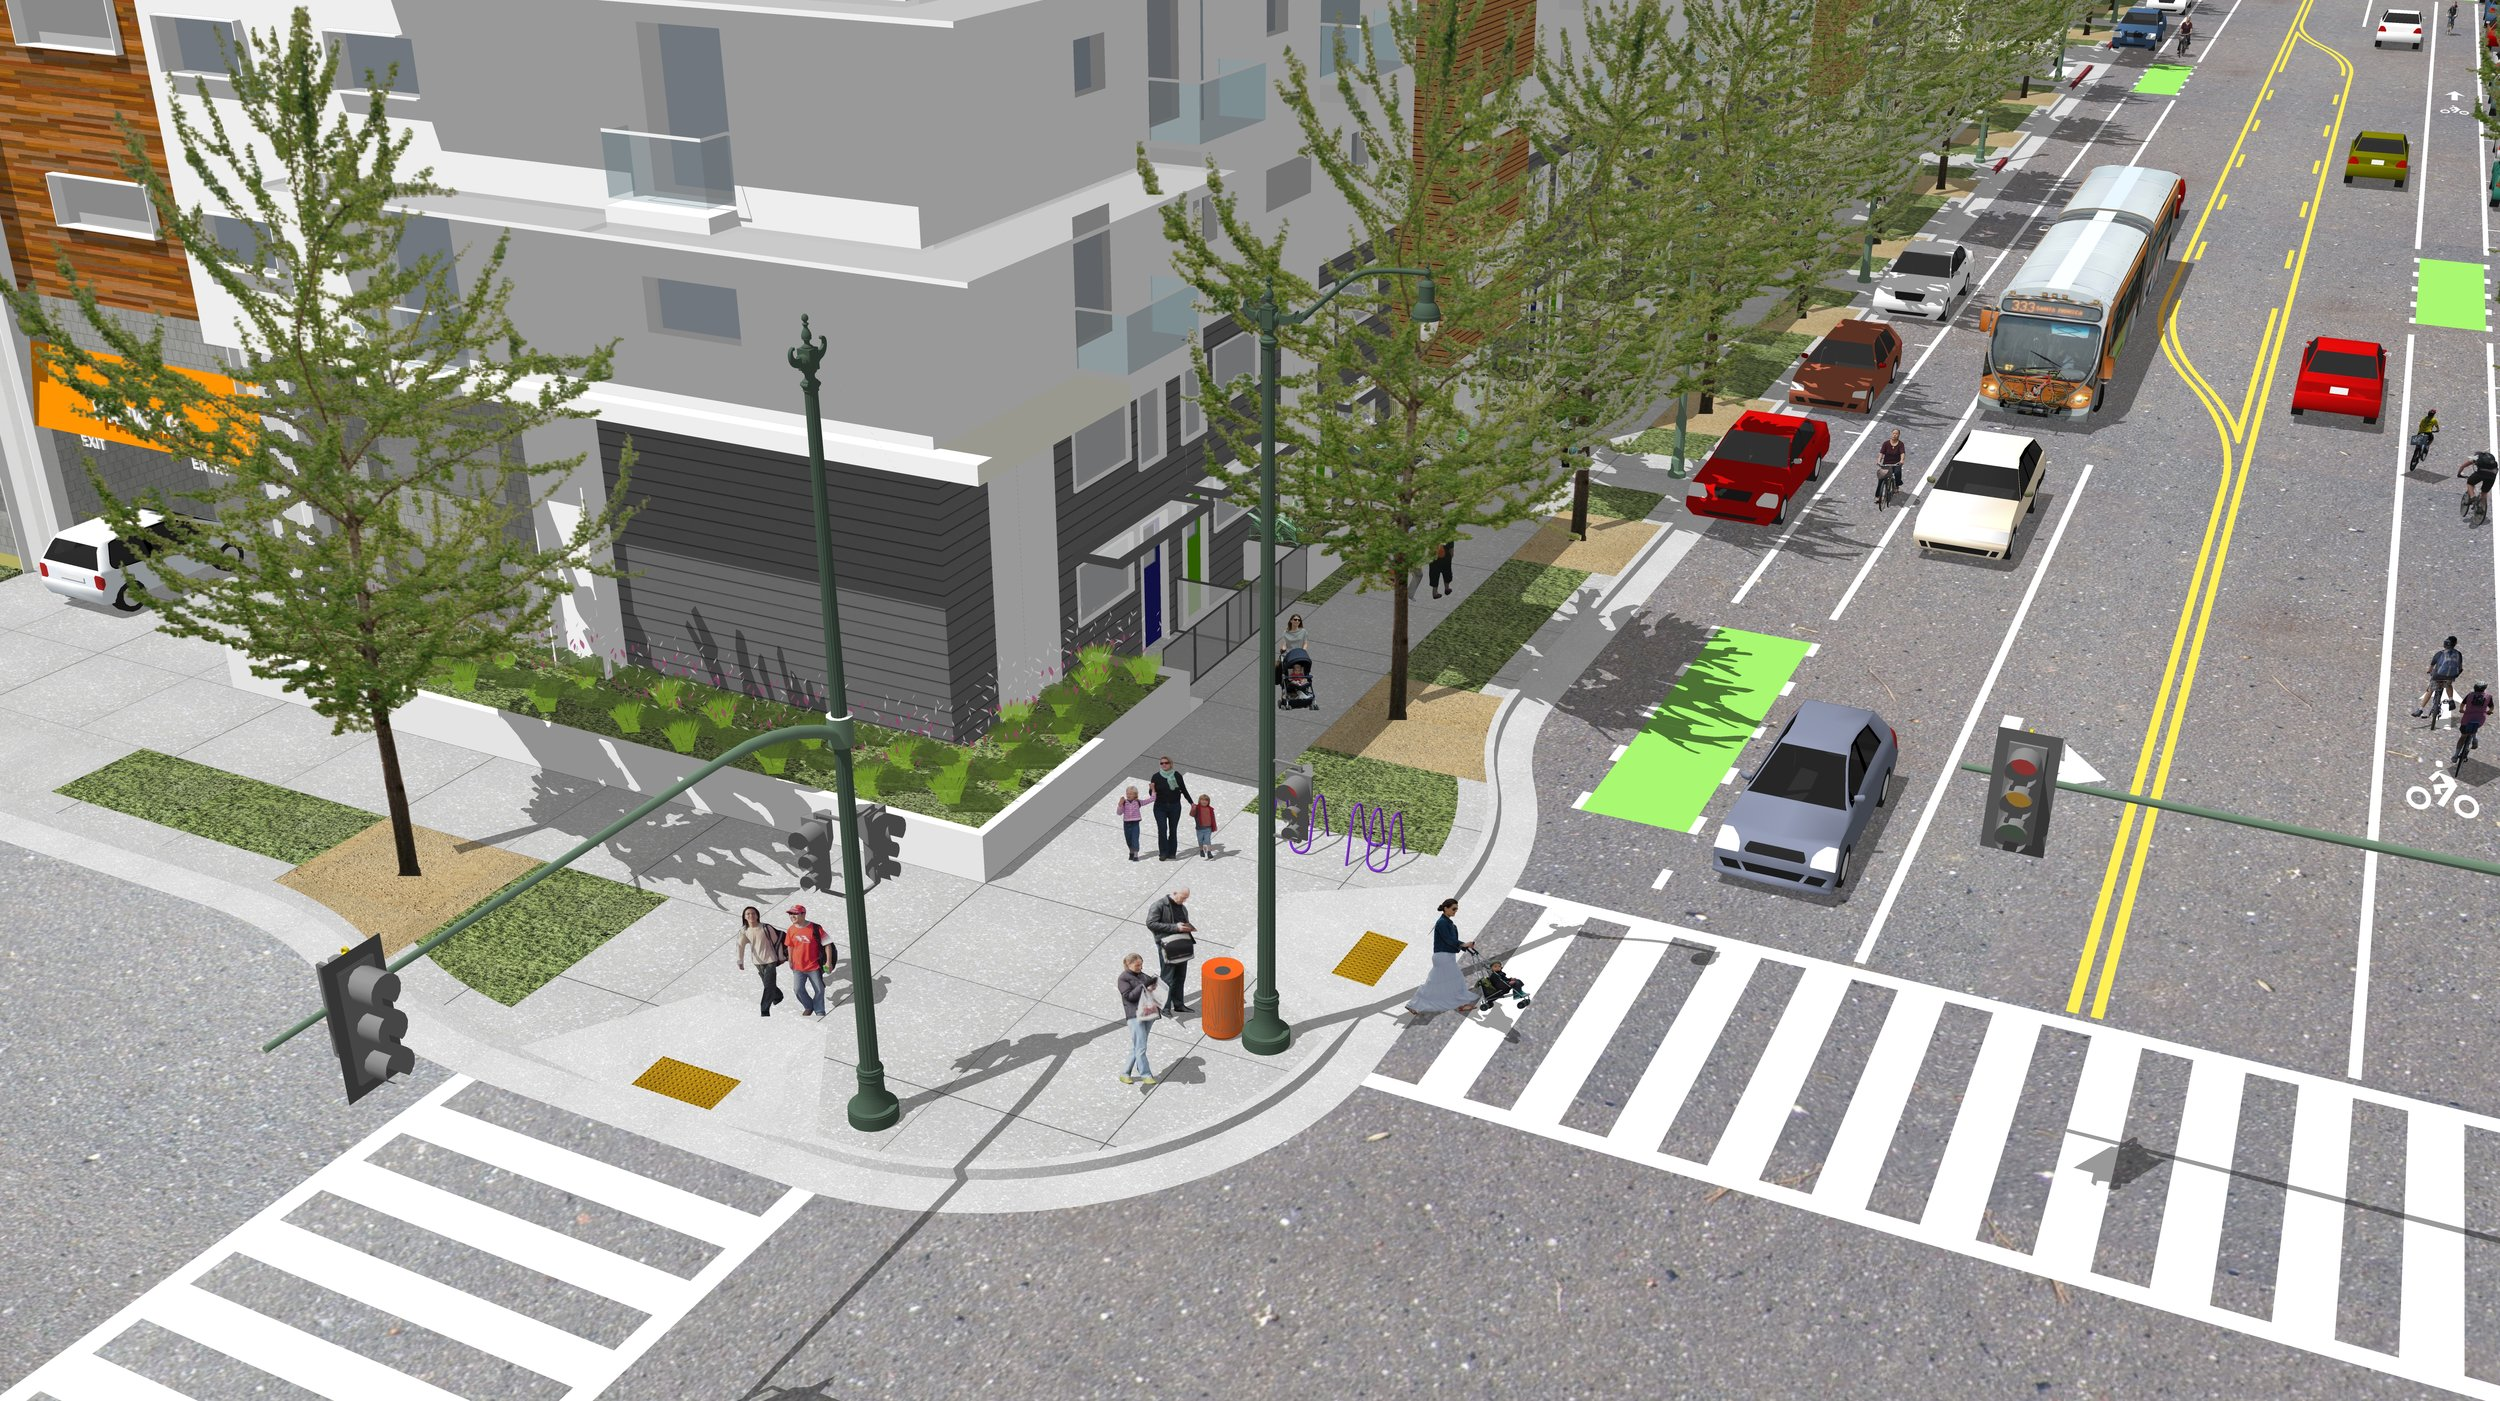 5B_56ft Avenue_Bicycle Priority_Unprotected_Residential 15ft sidewalk_3D_Curb Extension.jpg